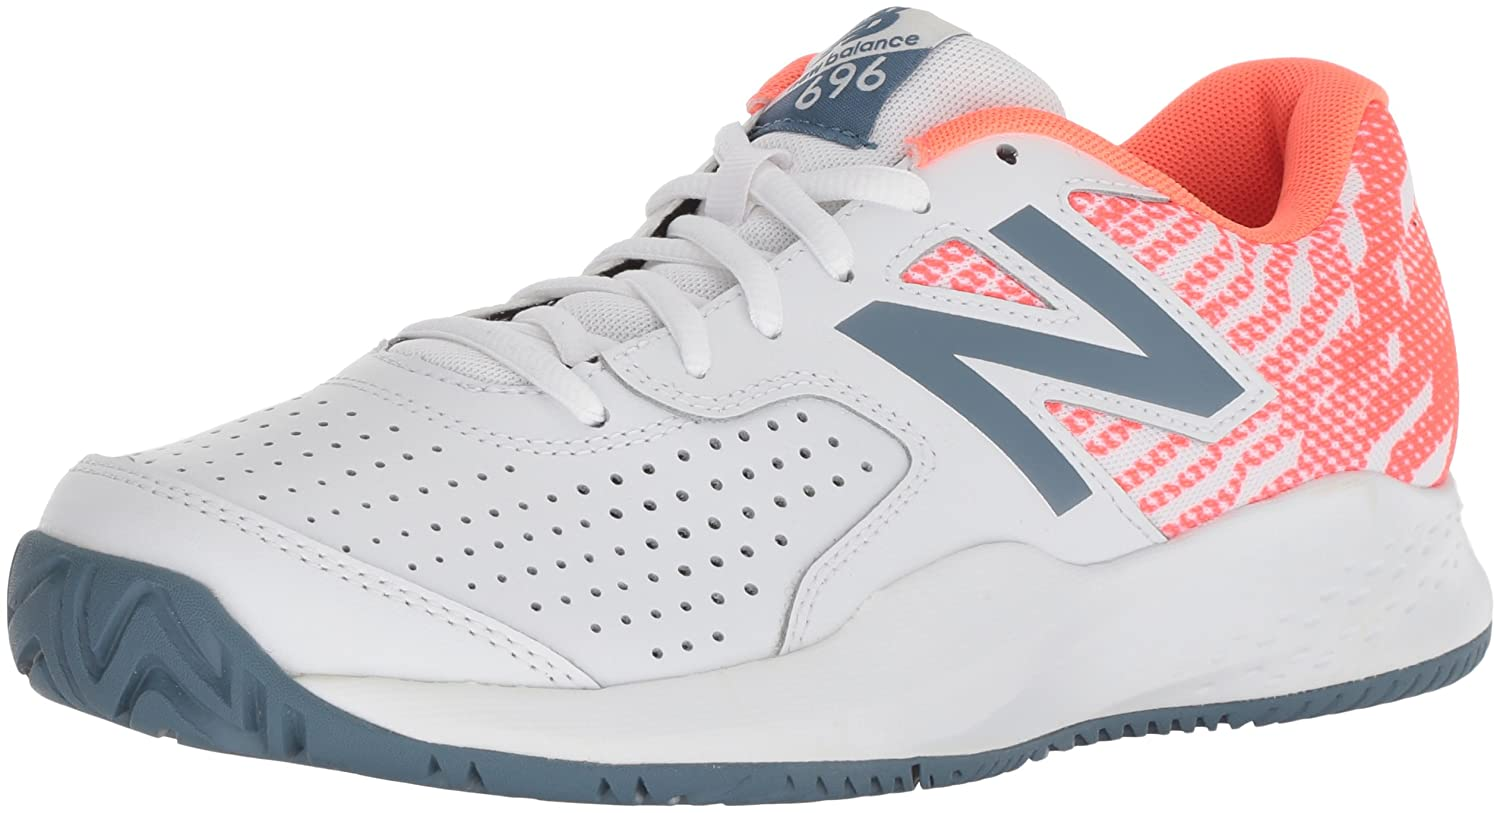 New Balance Women's 696v3 Hard Court Tennis Shoe B075R3RDC8 8 B(M) US|White